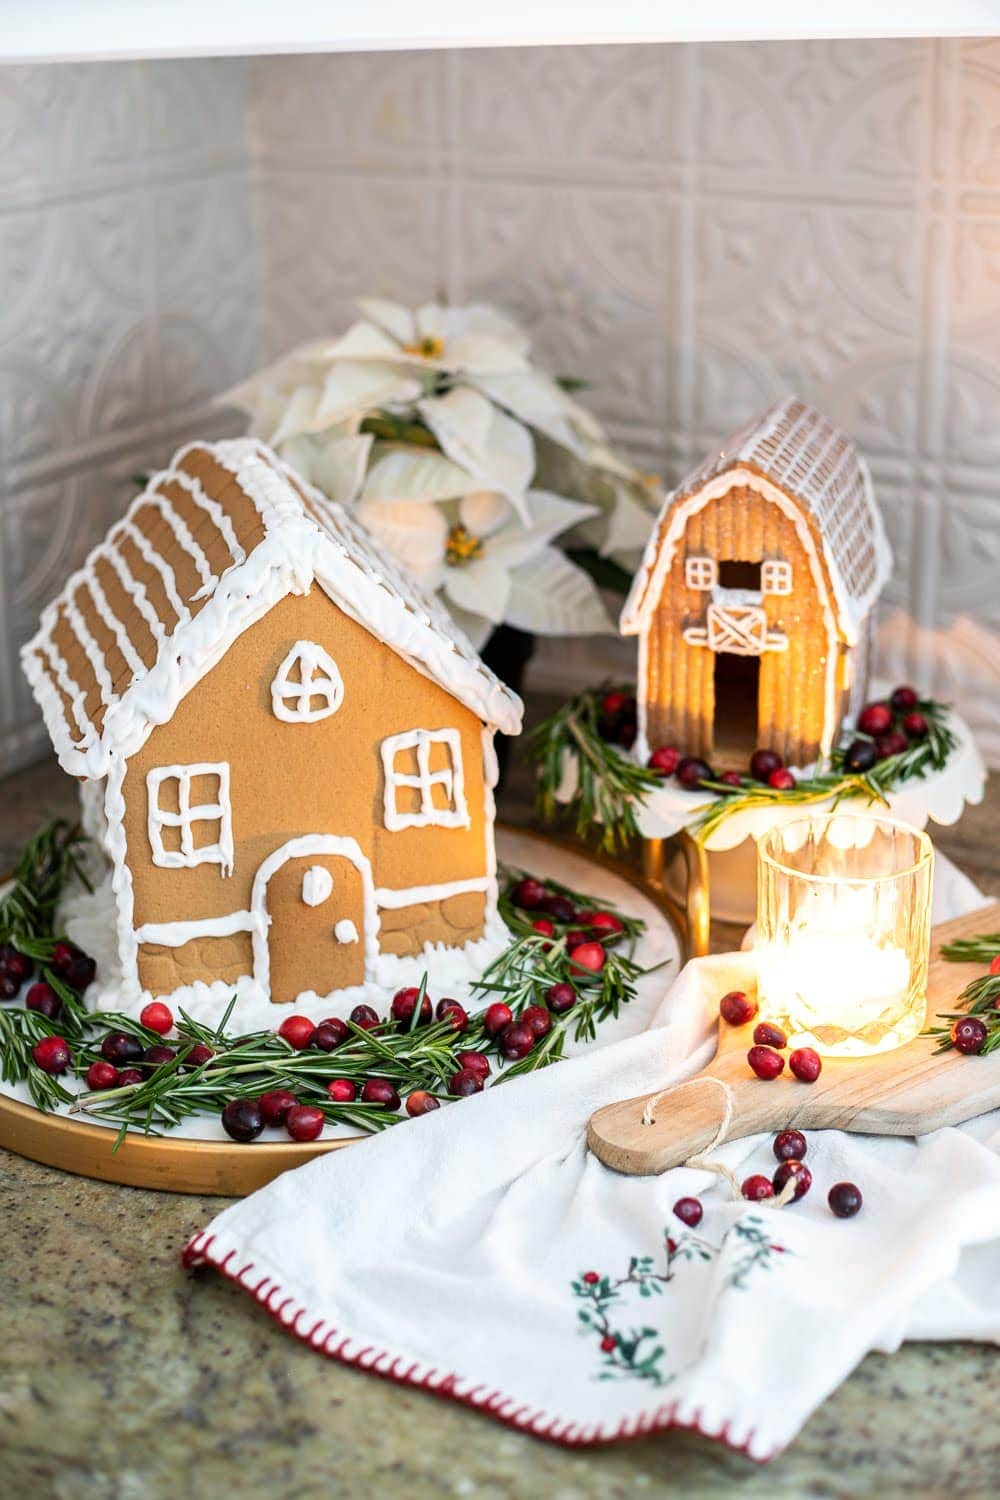 Display this pre-built gingerbread house on your kitchen countertops for a festive Swedish-inspired Christmas look